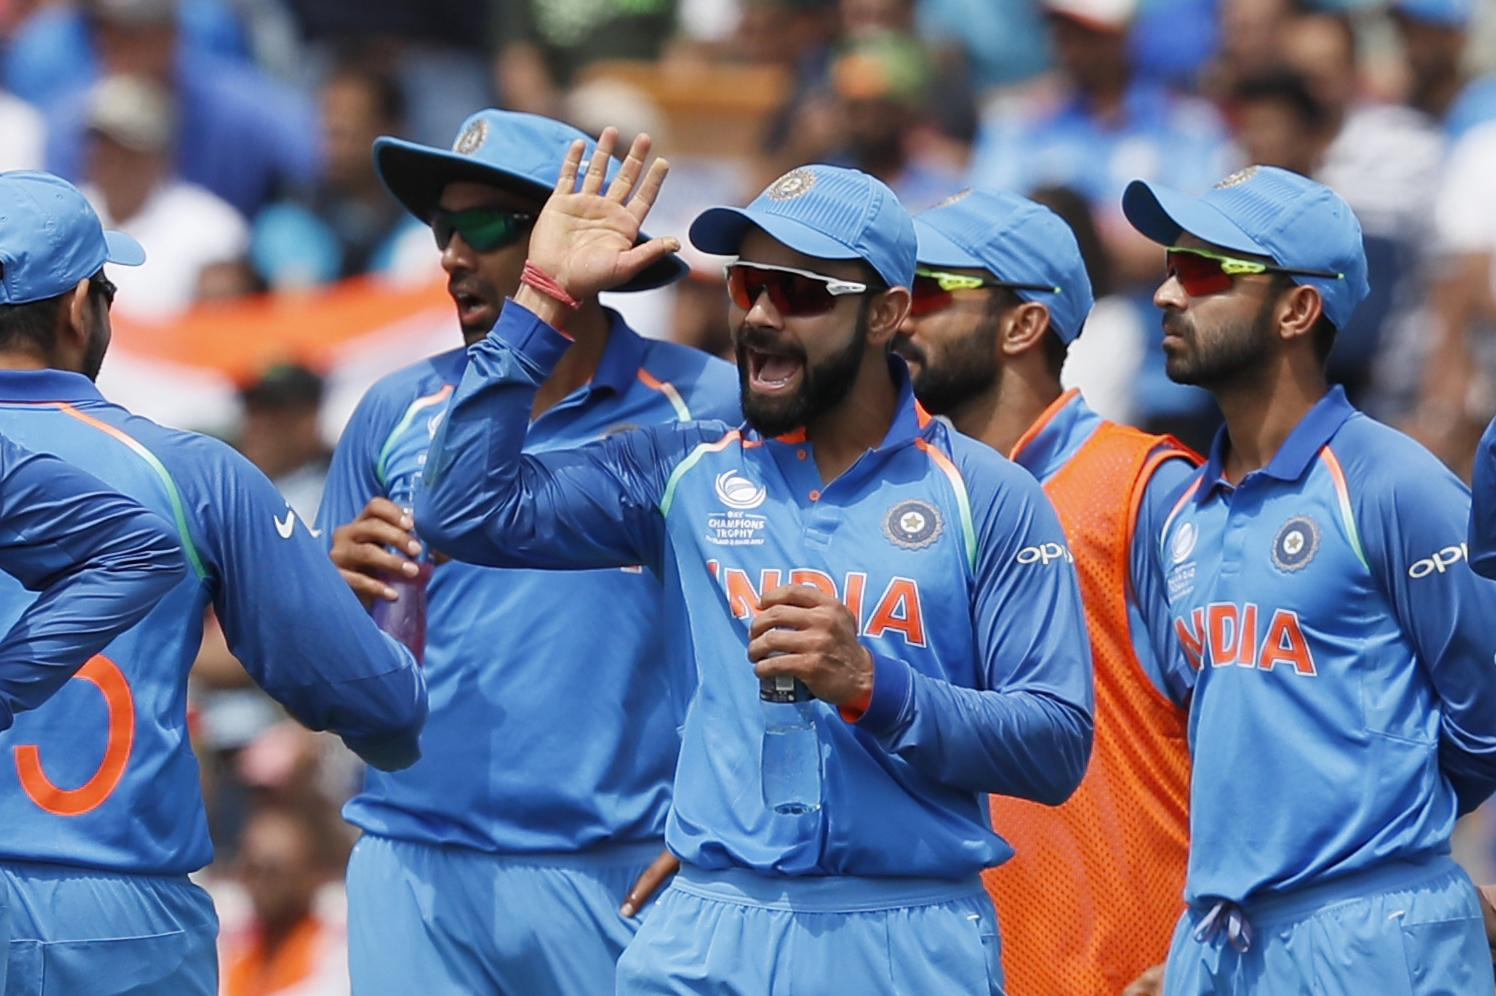 India are looking to win back the trophy they last won in 2011